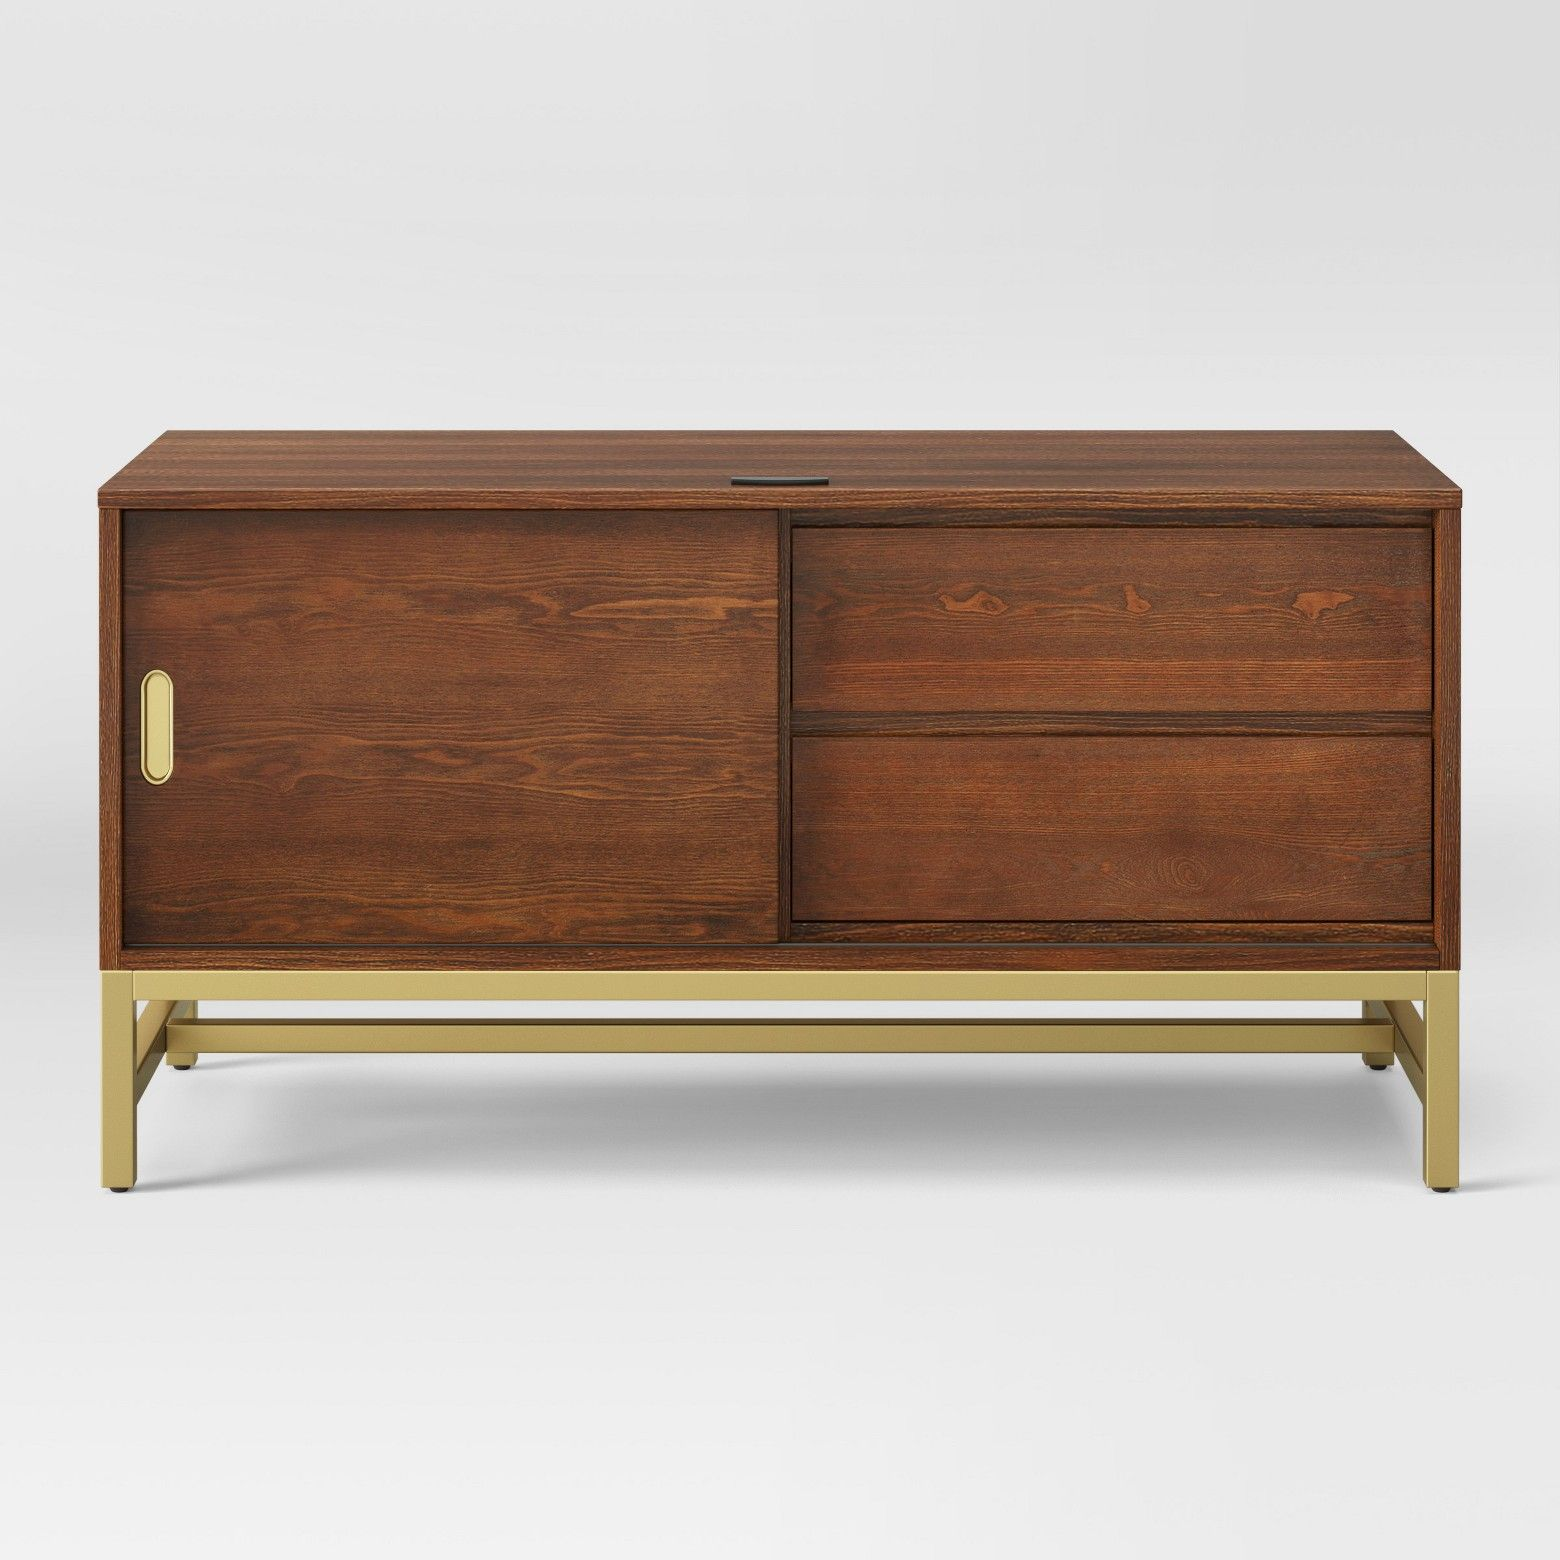 pin eleanor schichtel attention life crisis new apartment walnut one drawer accent table project swoon worthy items from target melodrama small plans decorative corners craft